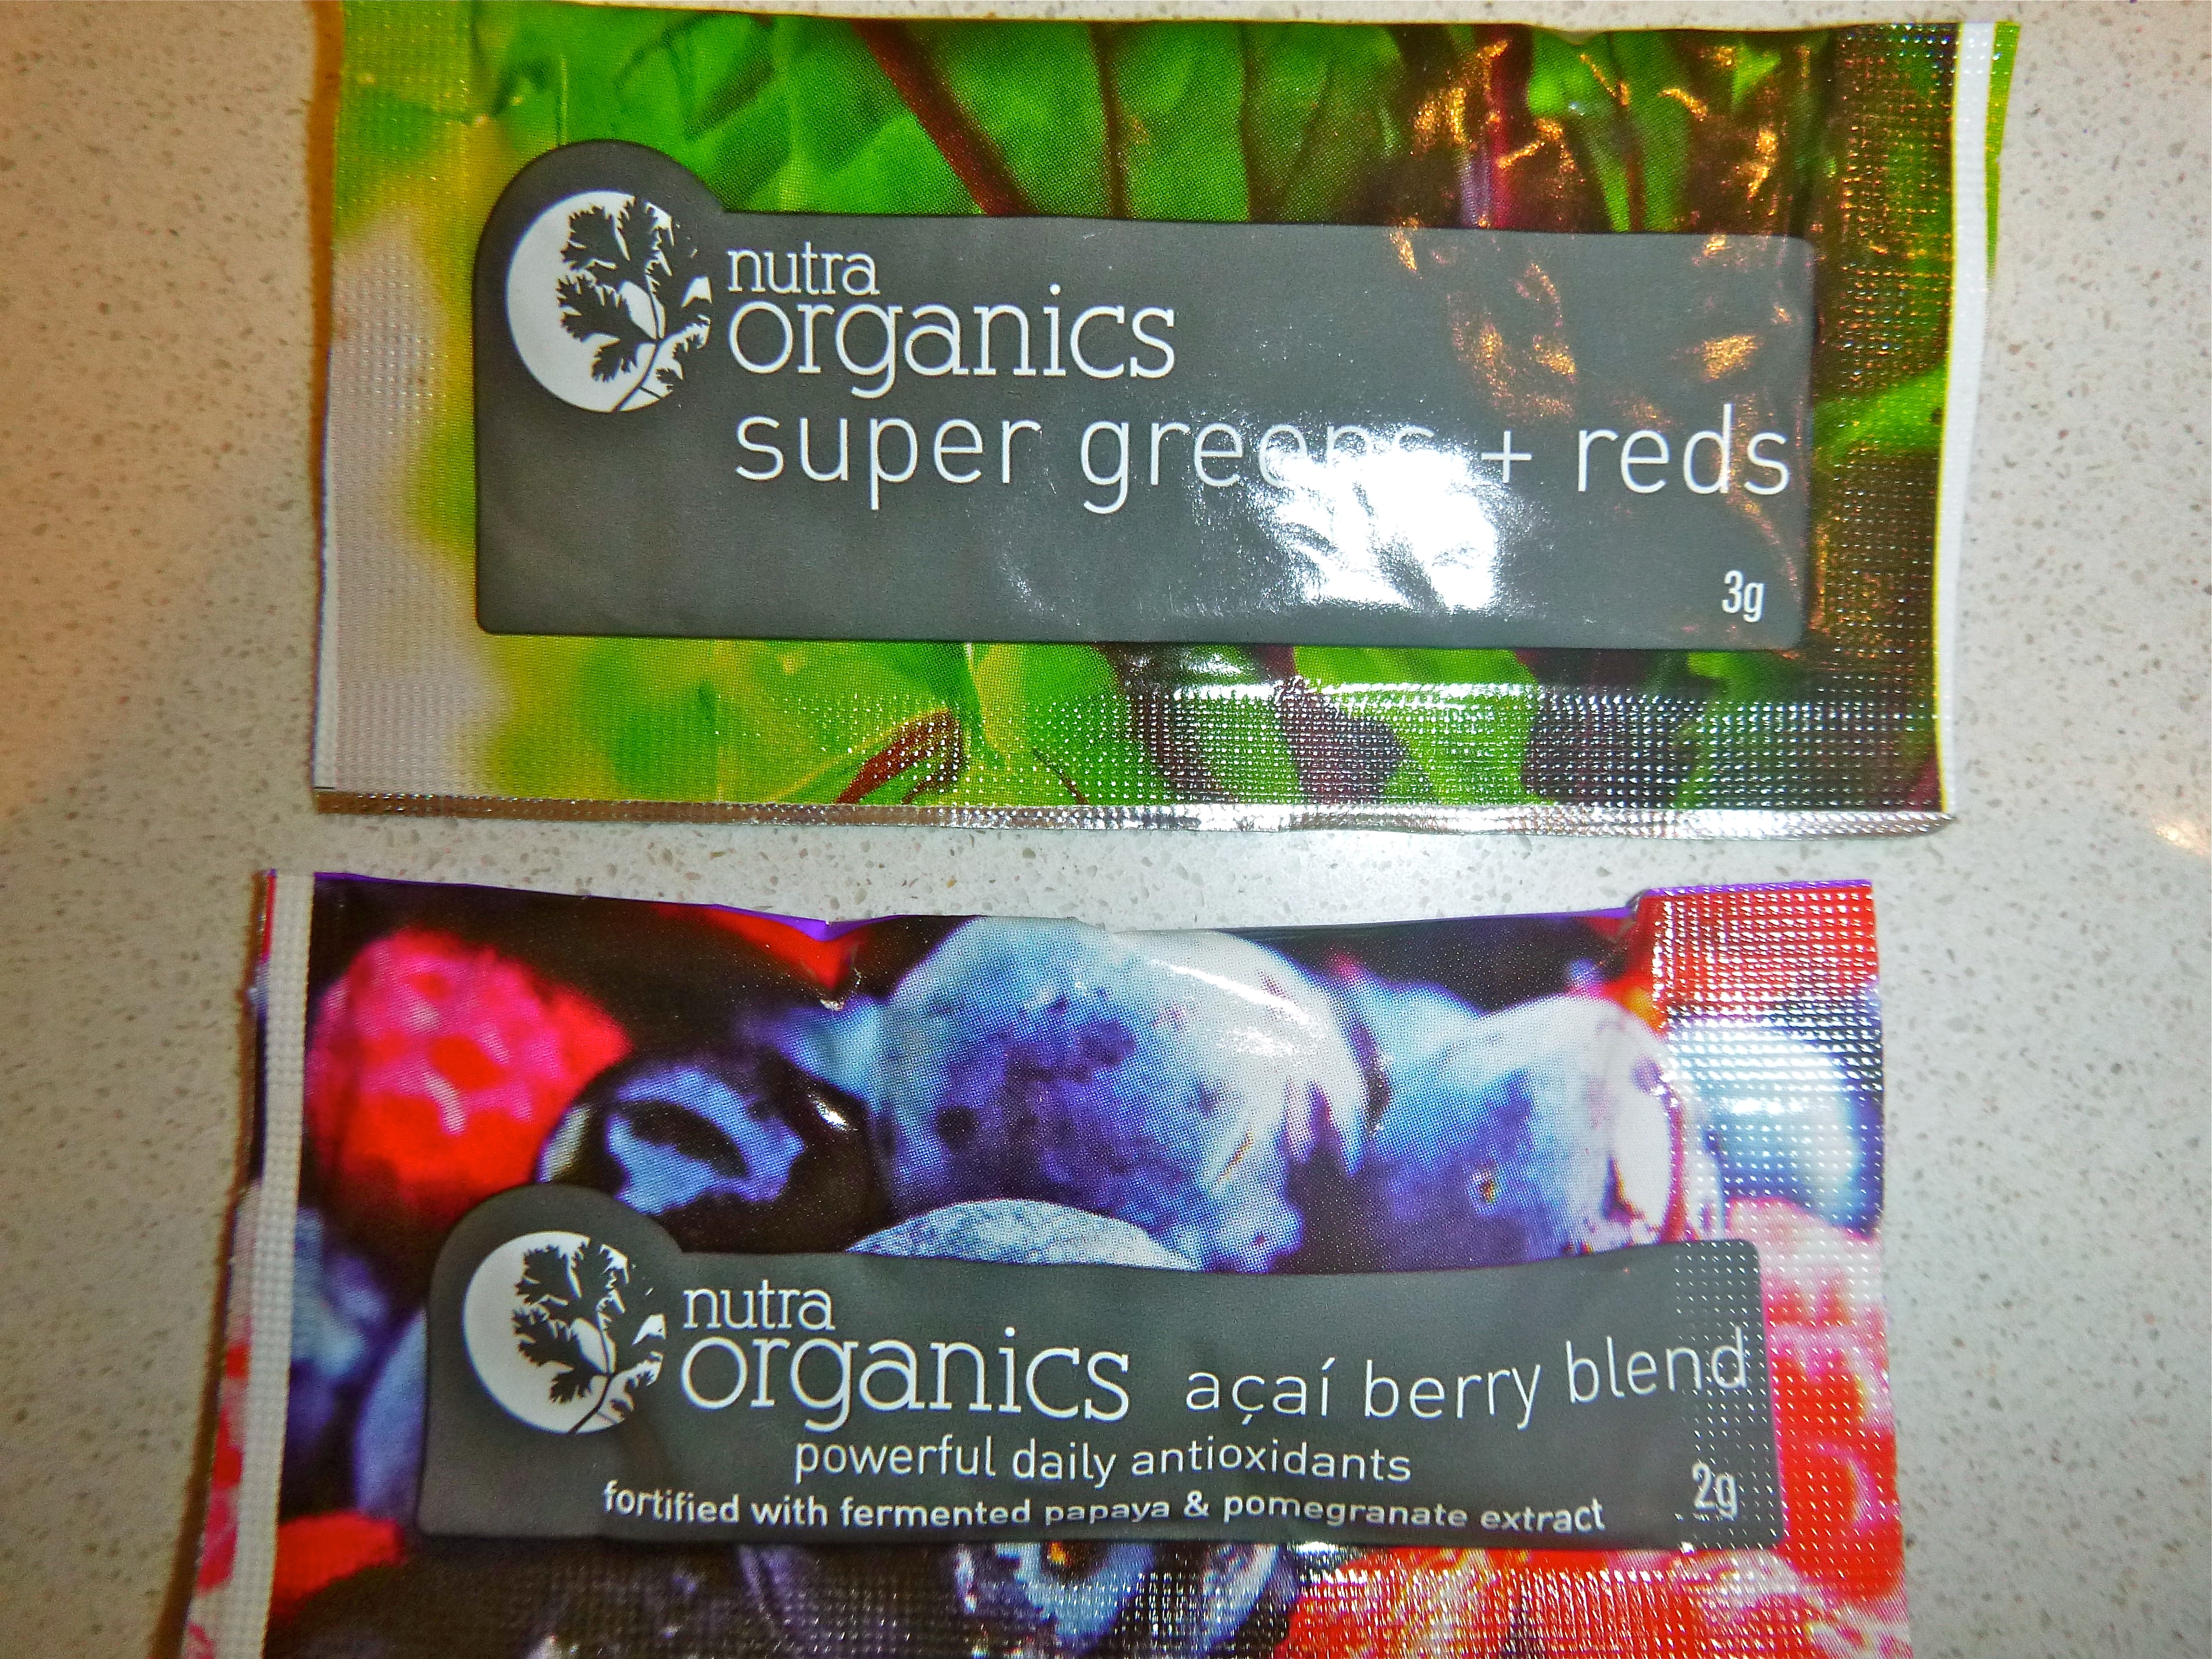 Nutra organics super greens and reds, acai berry blend